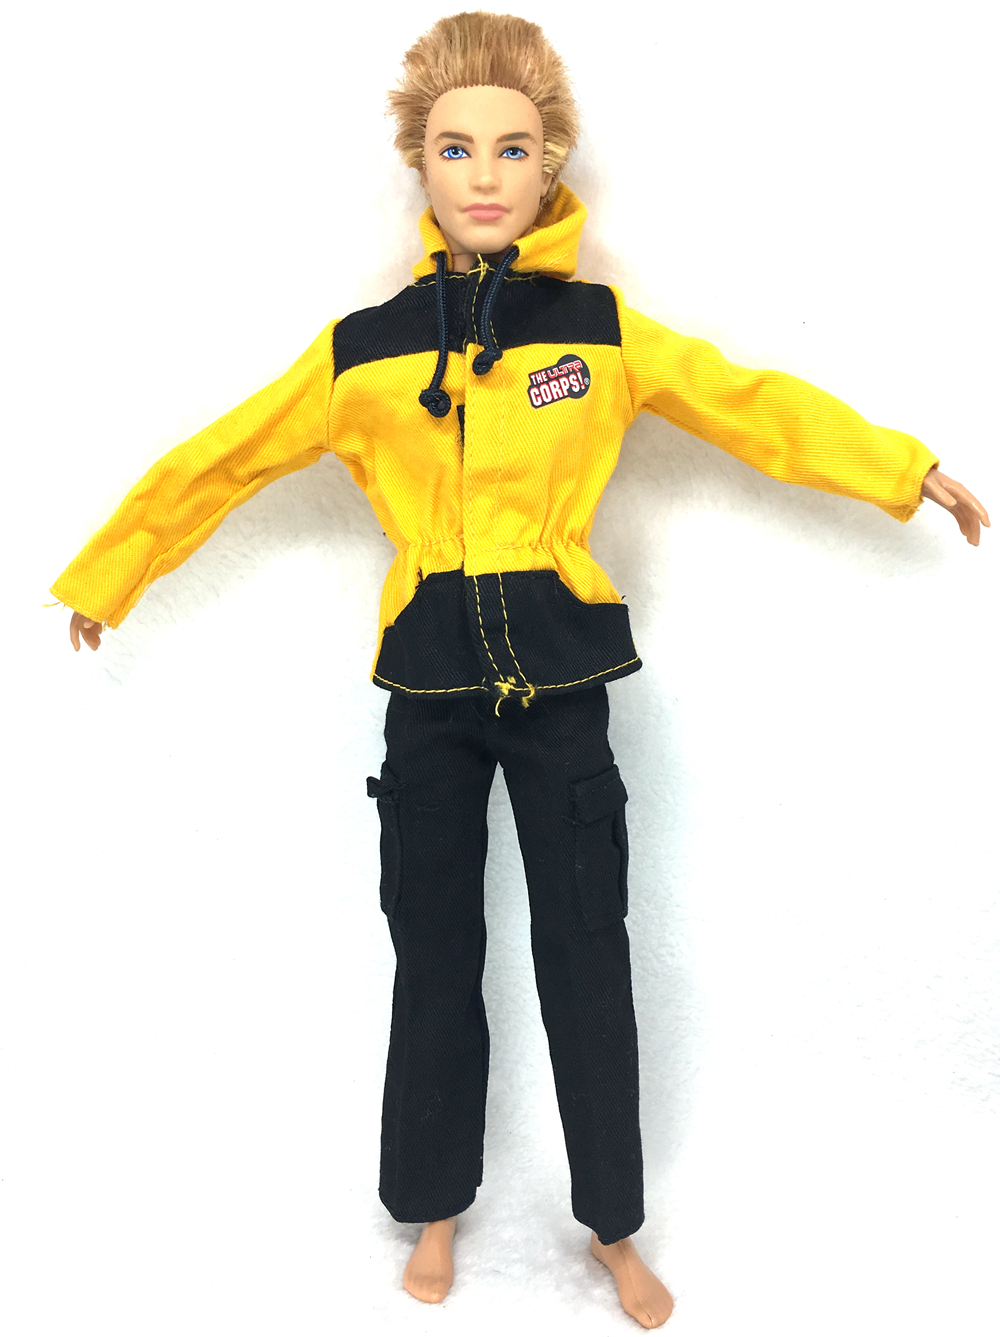 NK Unique Doll Prince Garments Aviator Fight Uniform Jumpsuits  Outfit For Barbie Boy Male  Ken Doll For Lanard  1/6 Soldier